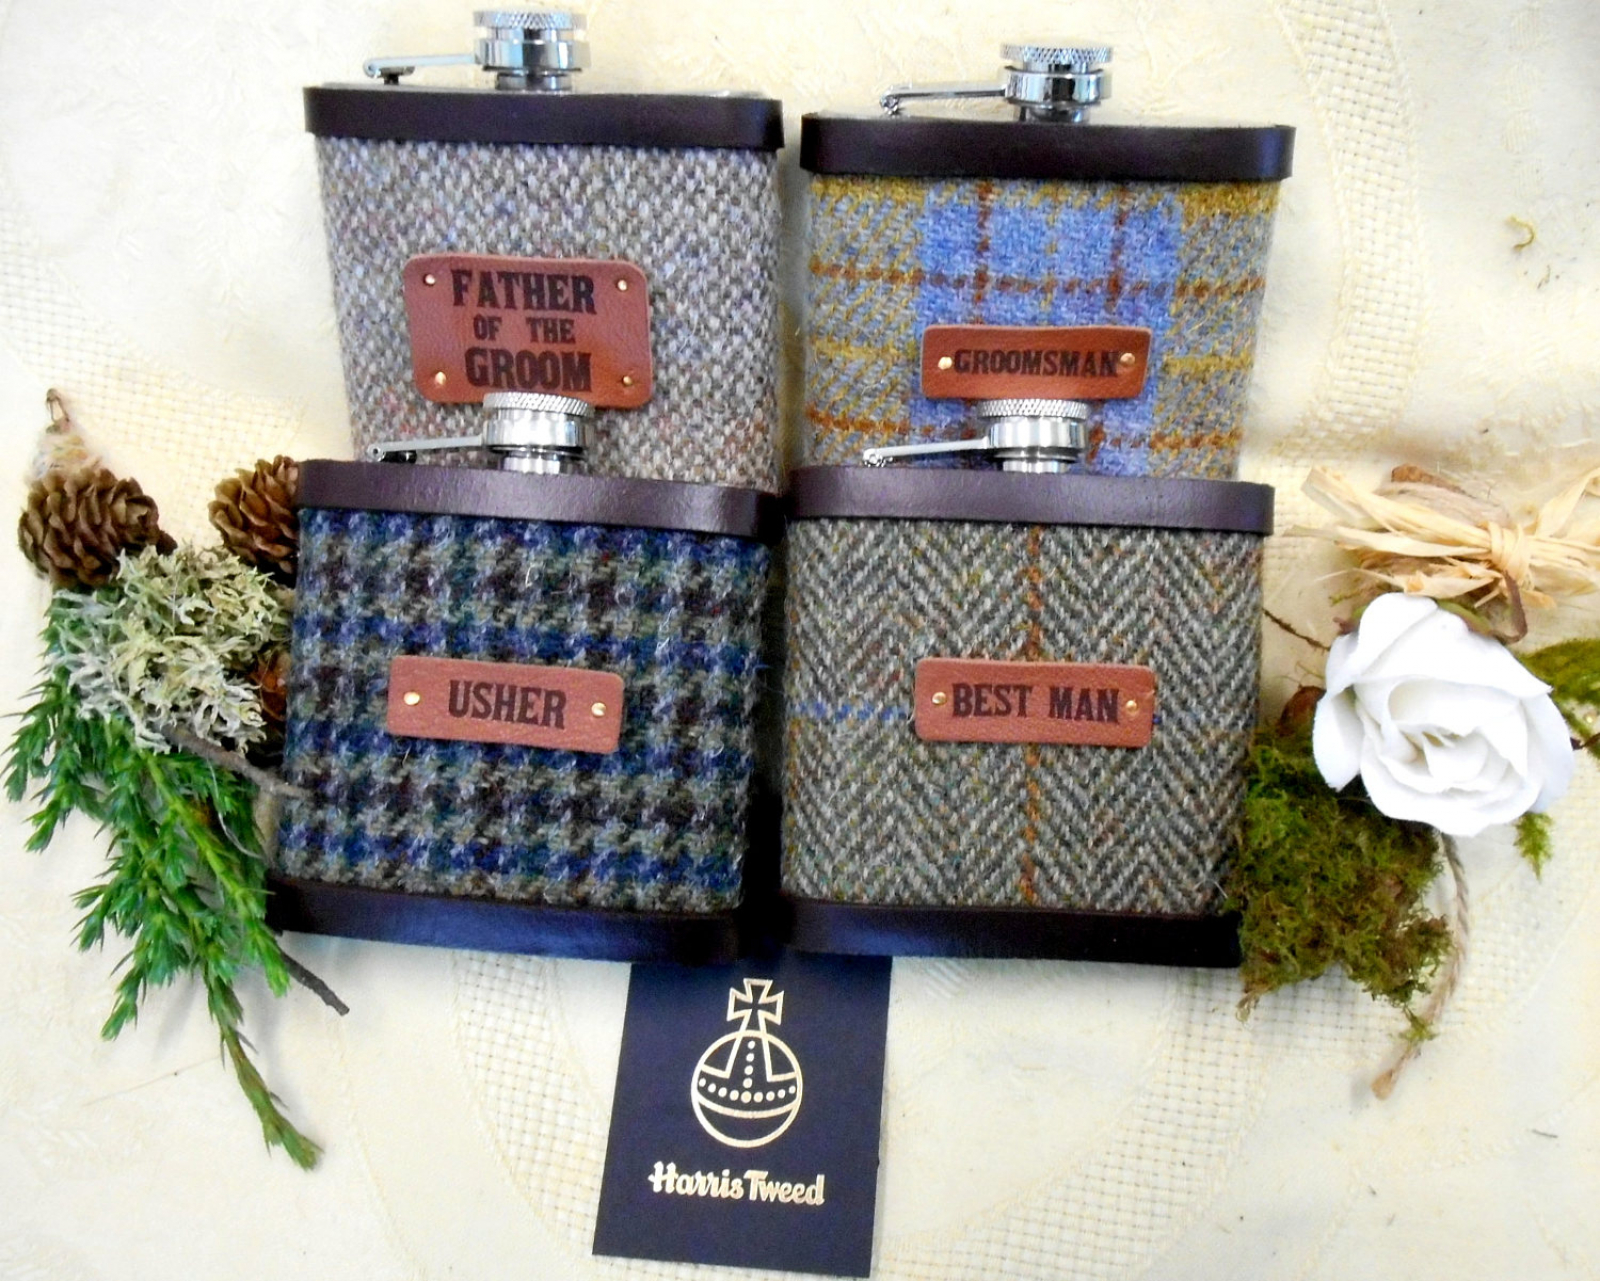 Wedding Gift Ideas For Bestman And Ushers: Set Of Four Rustic Or Barn Wedding Gifts Harris Tweed Hip